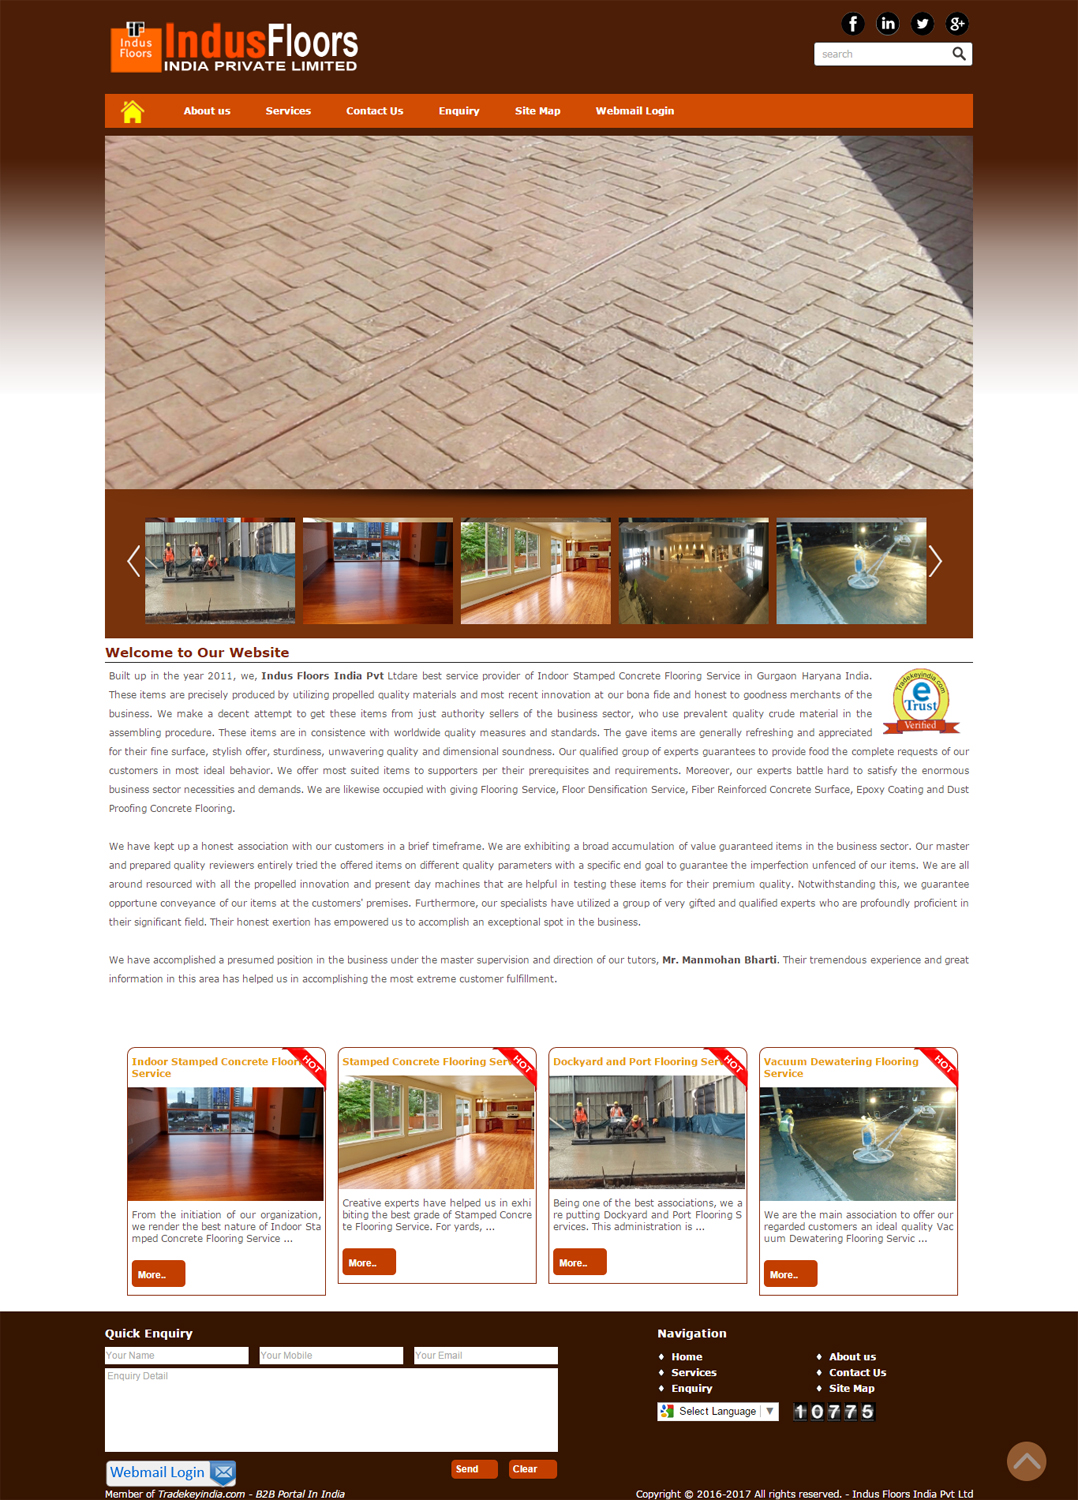 Indus Floors India Pvt Ltd